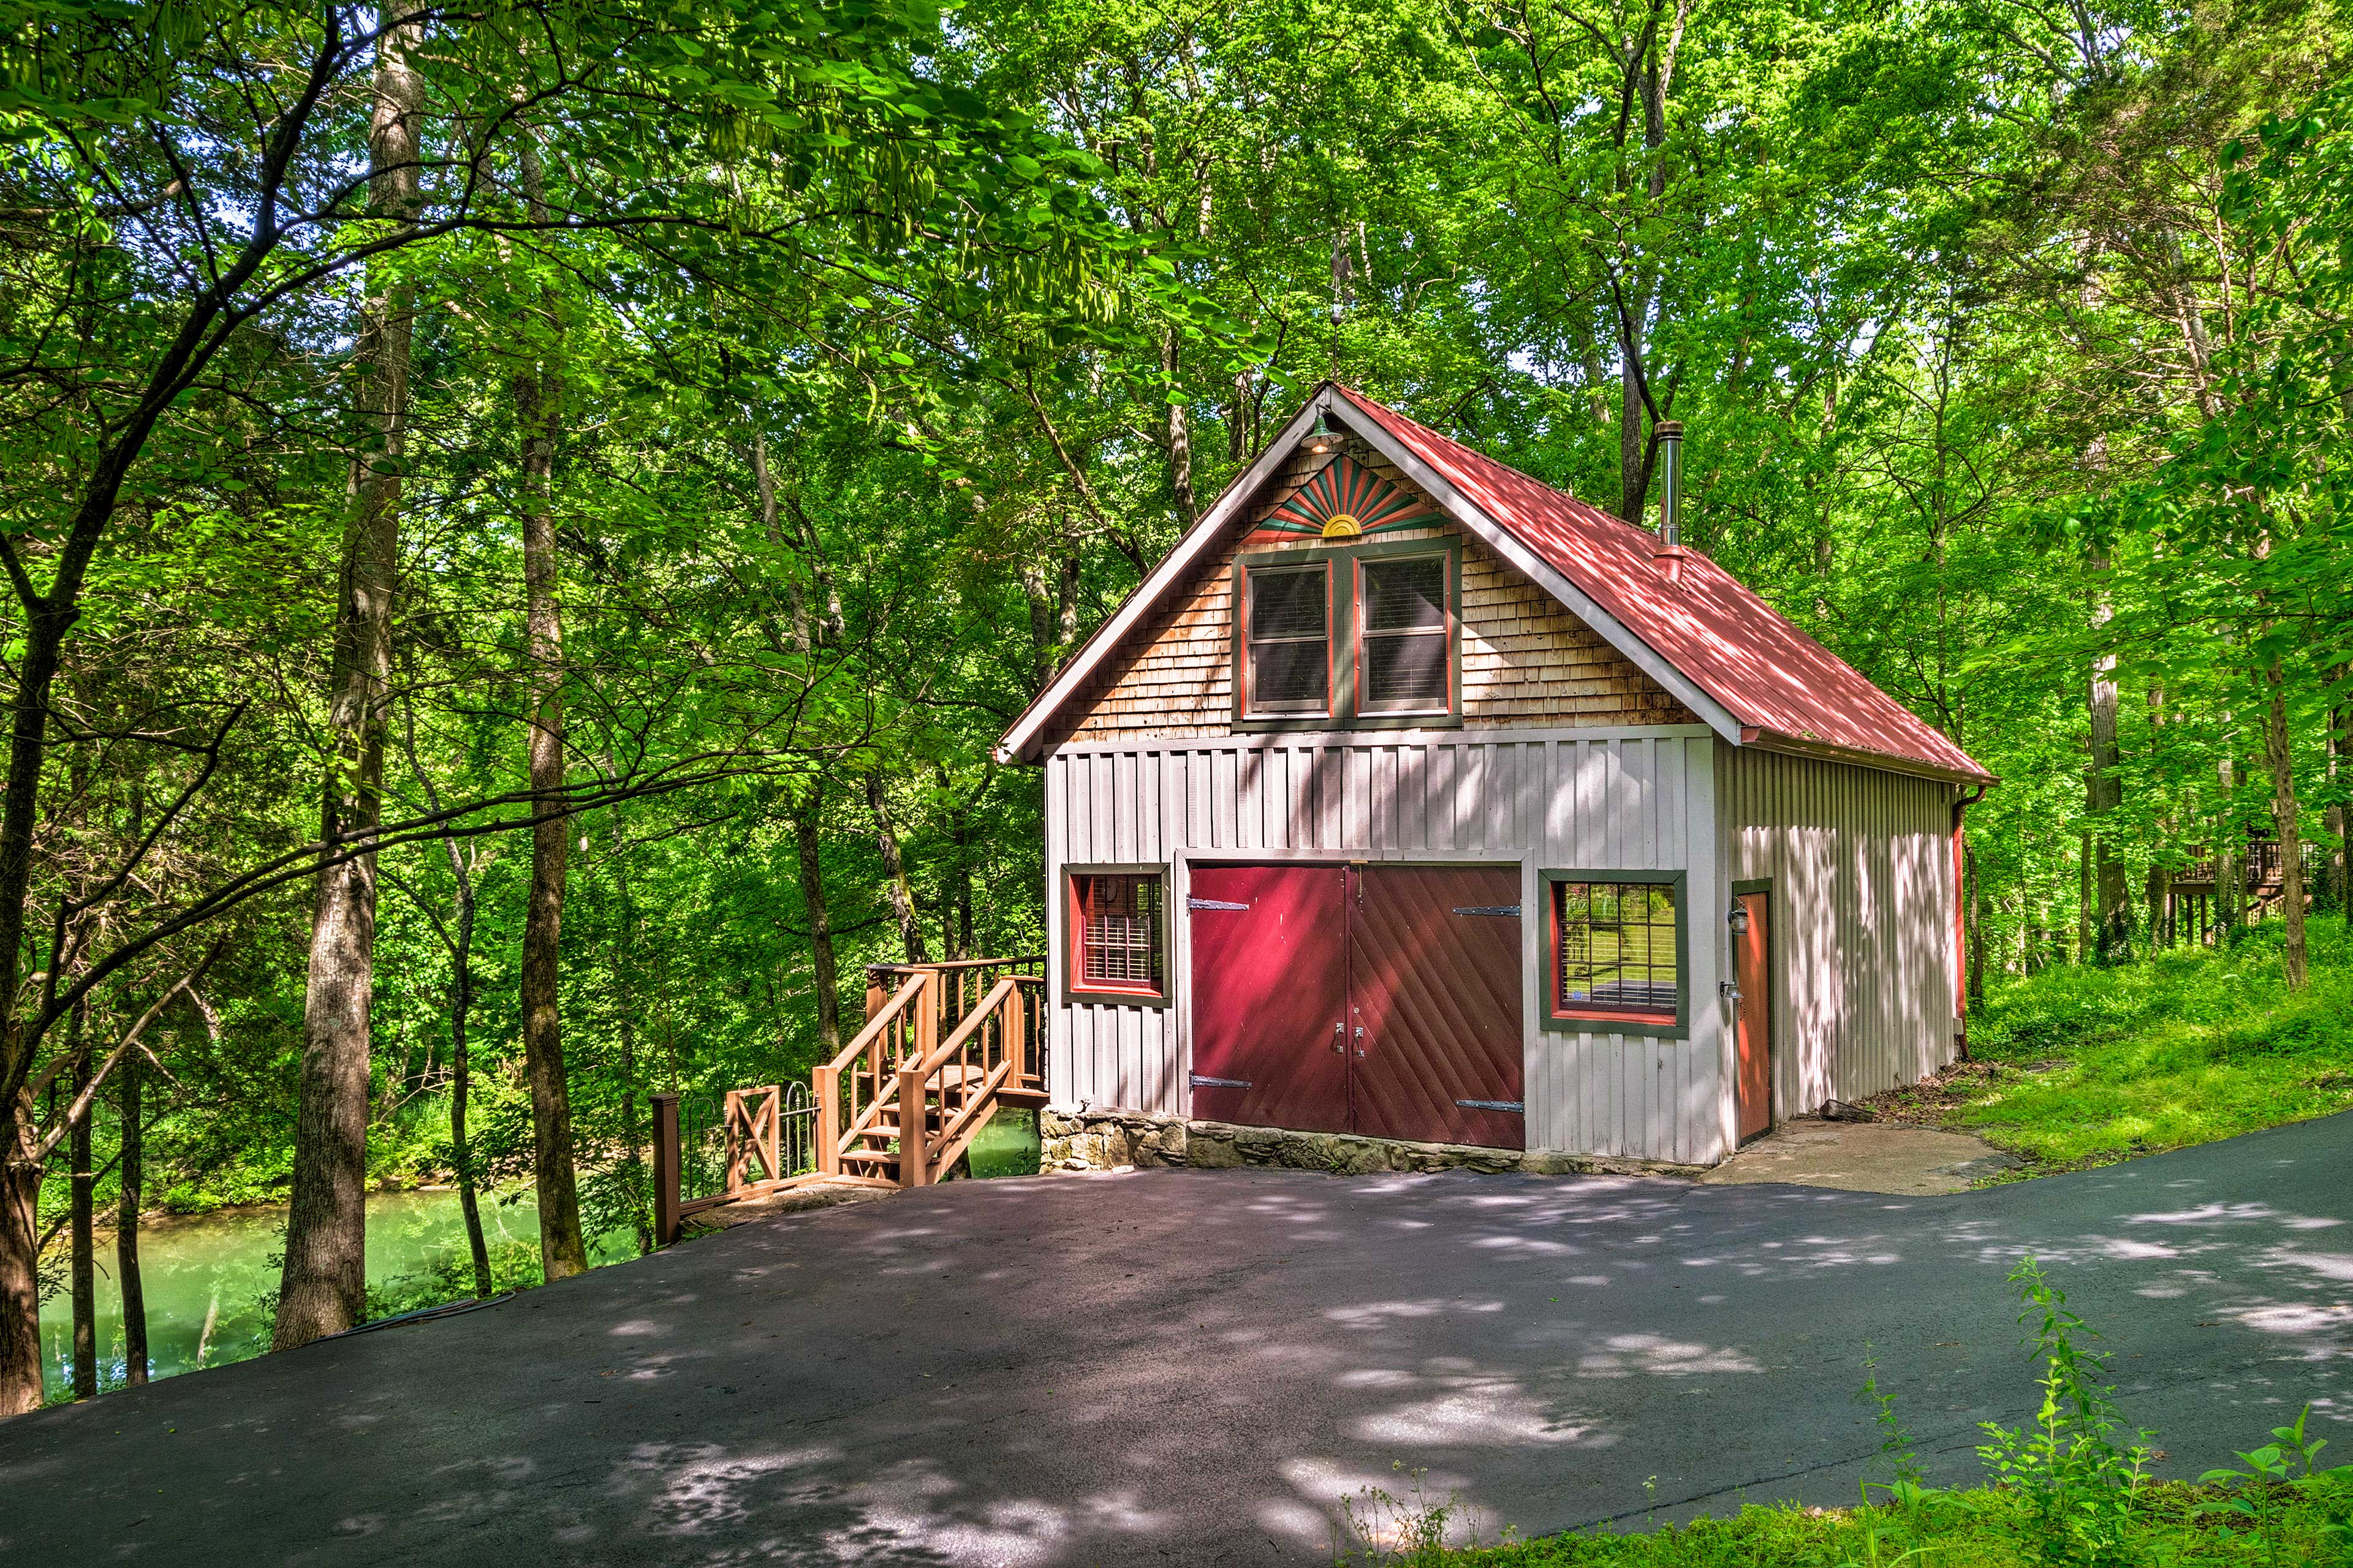 This quaint vacation rental cabin lies just outside of Bowling Green, KY!